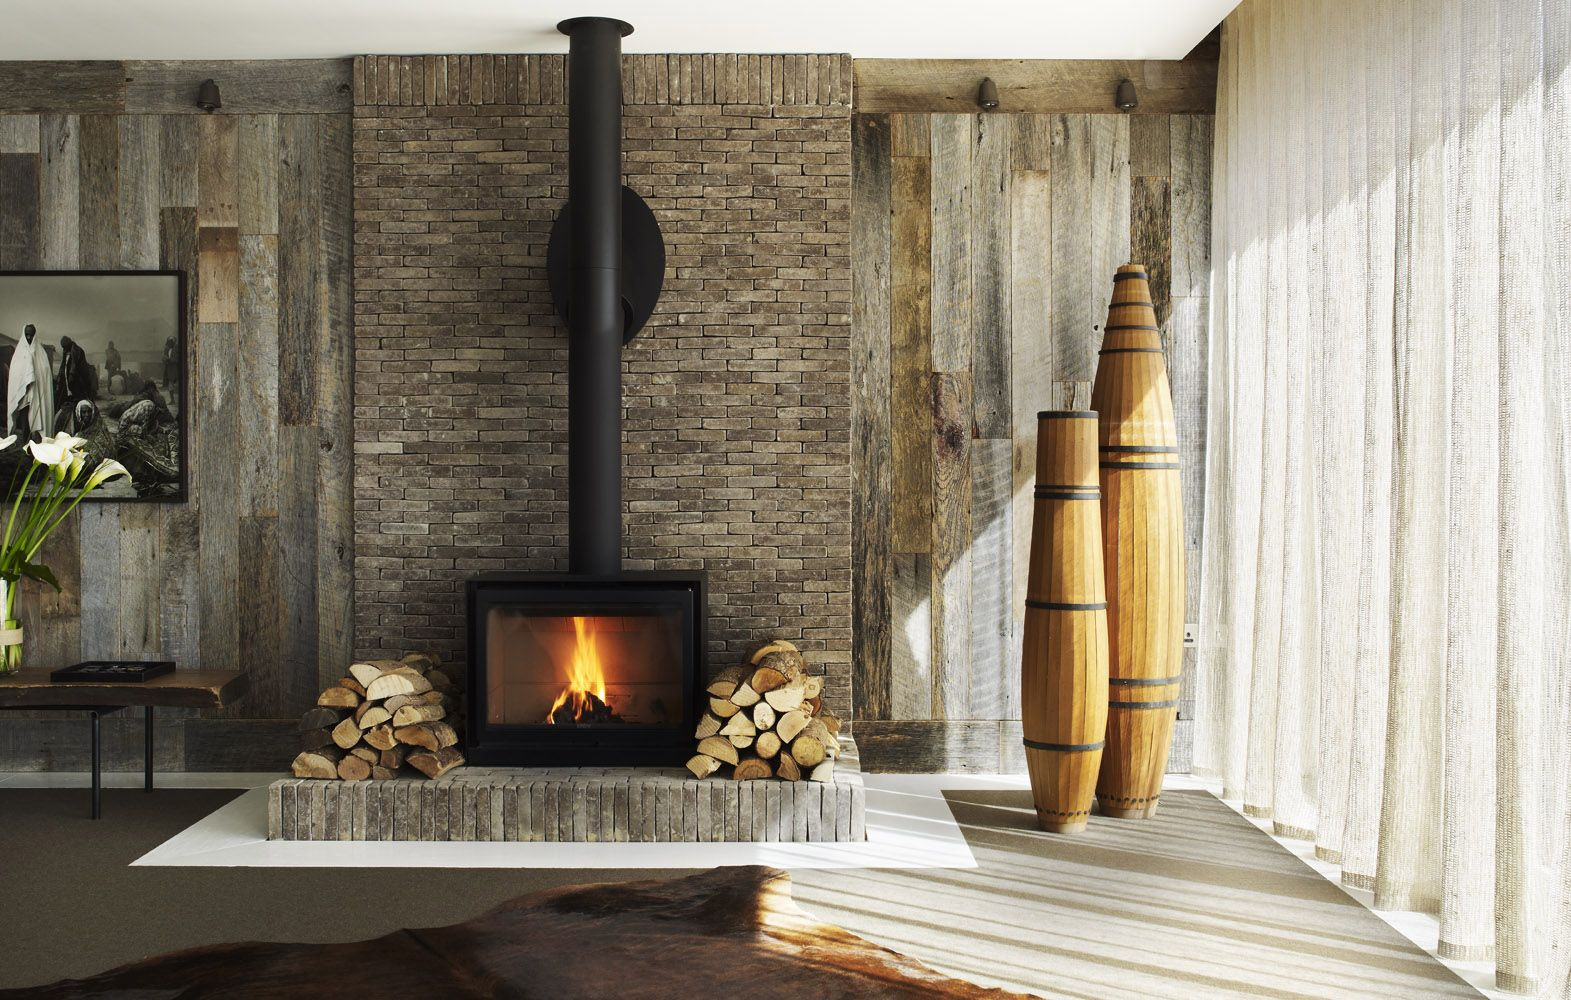 mel yates photography living rooms i home fireplace